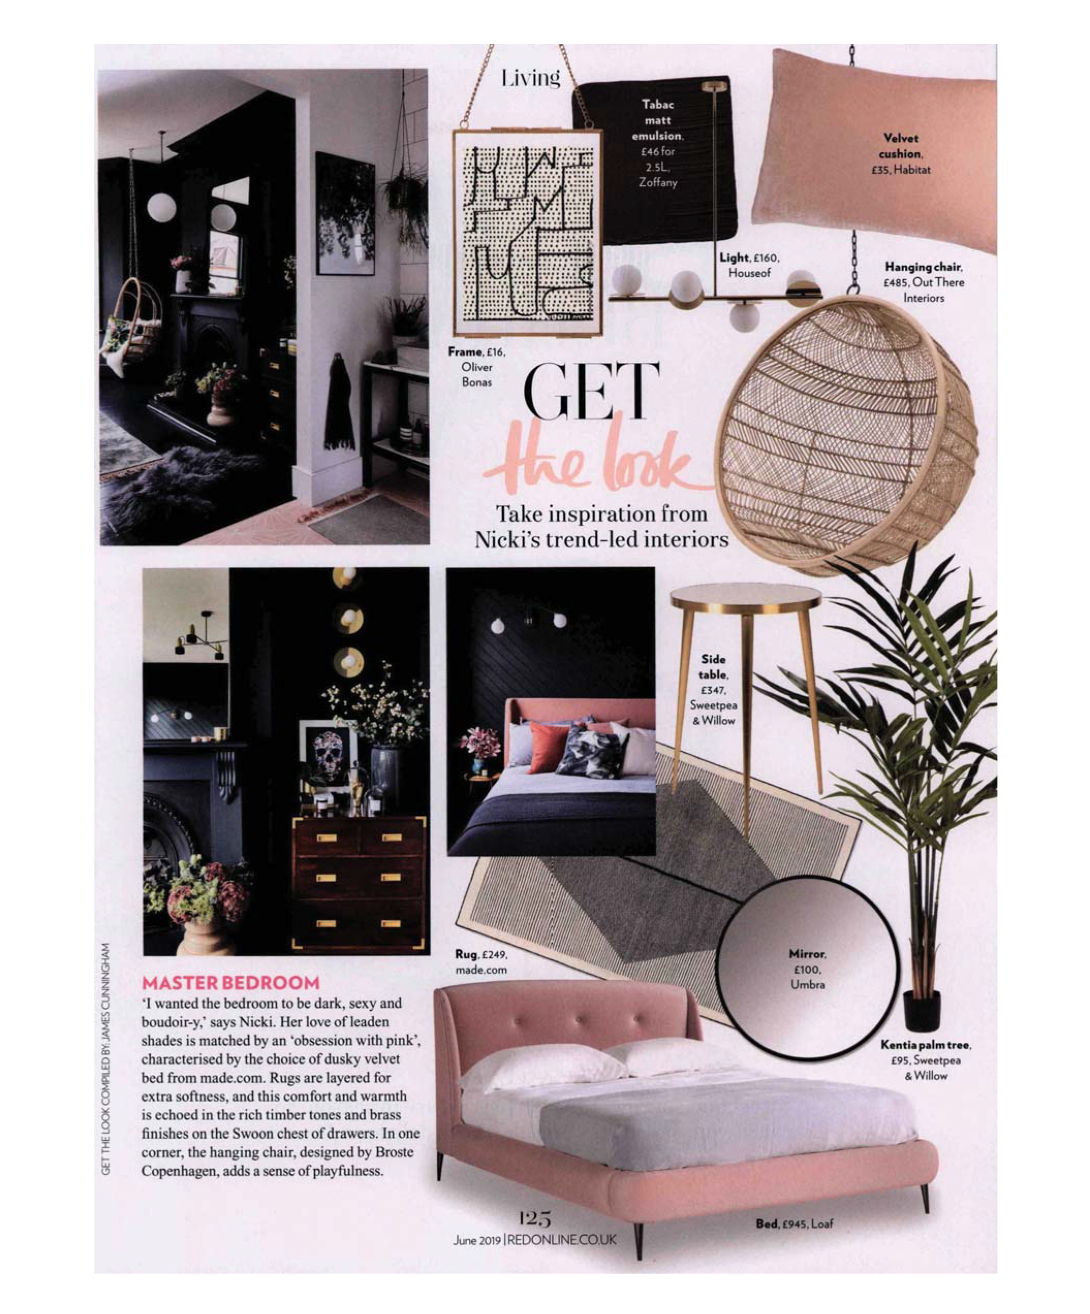 pressarticle-red-magazine-houseof-get-the-look-opal-disk-ceiling-light-brass